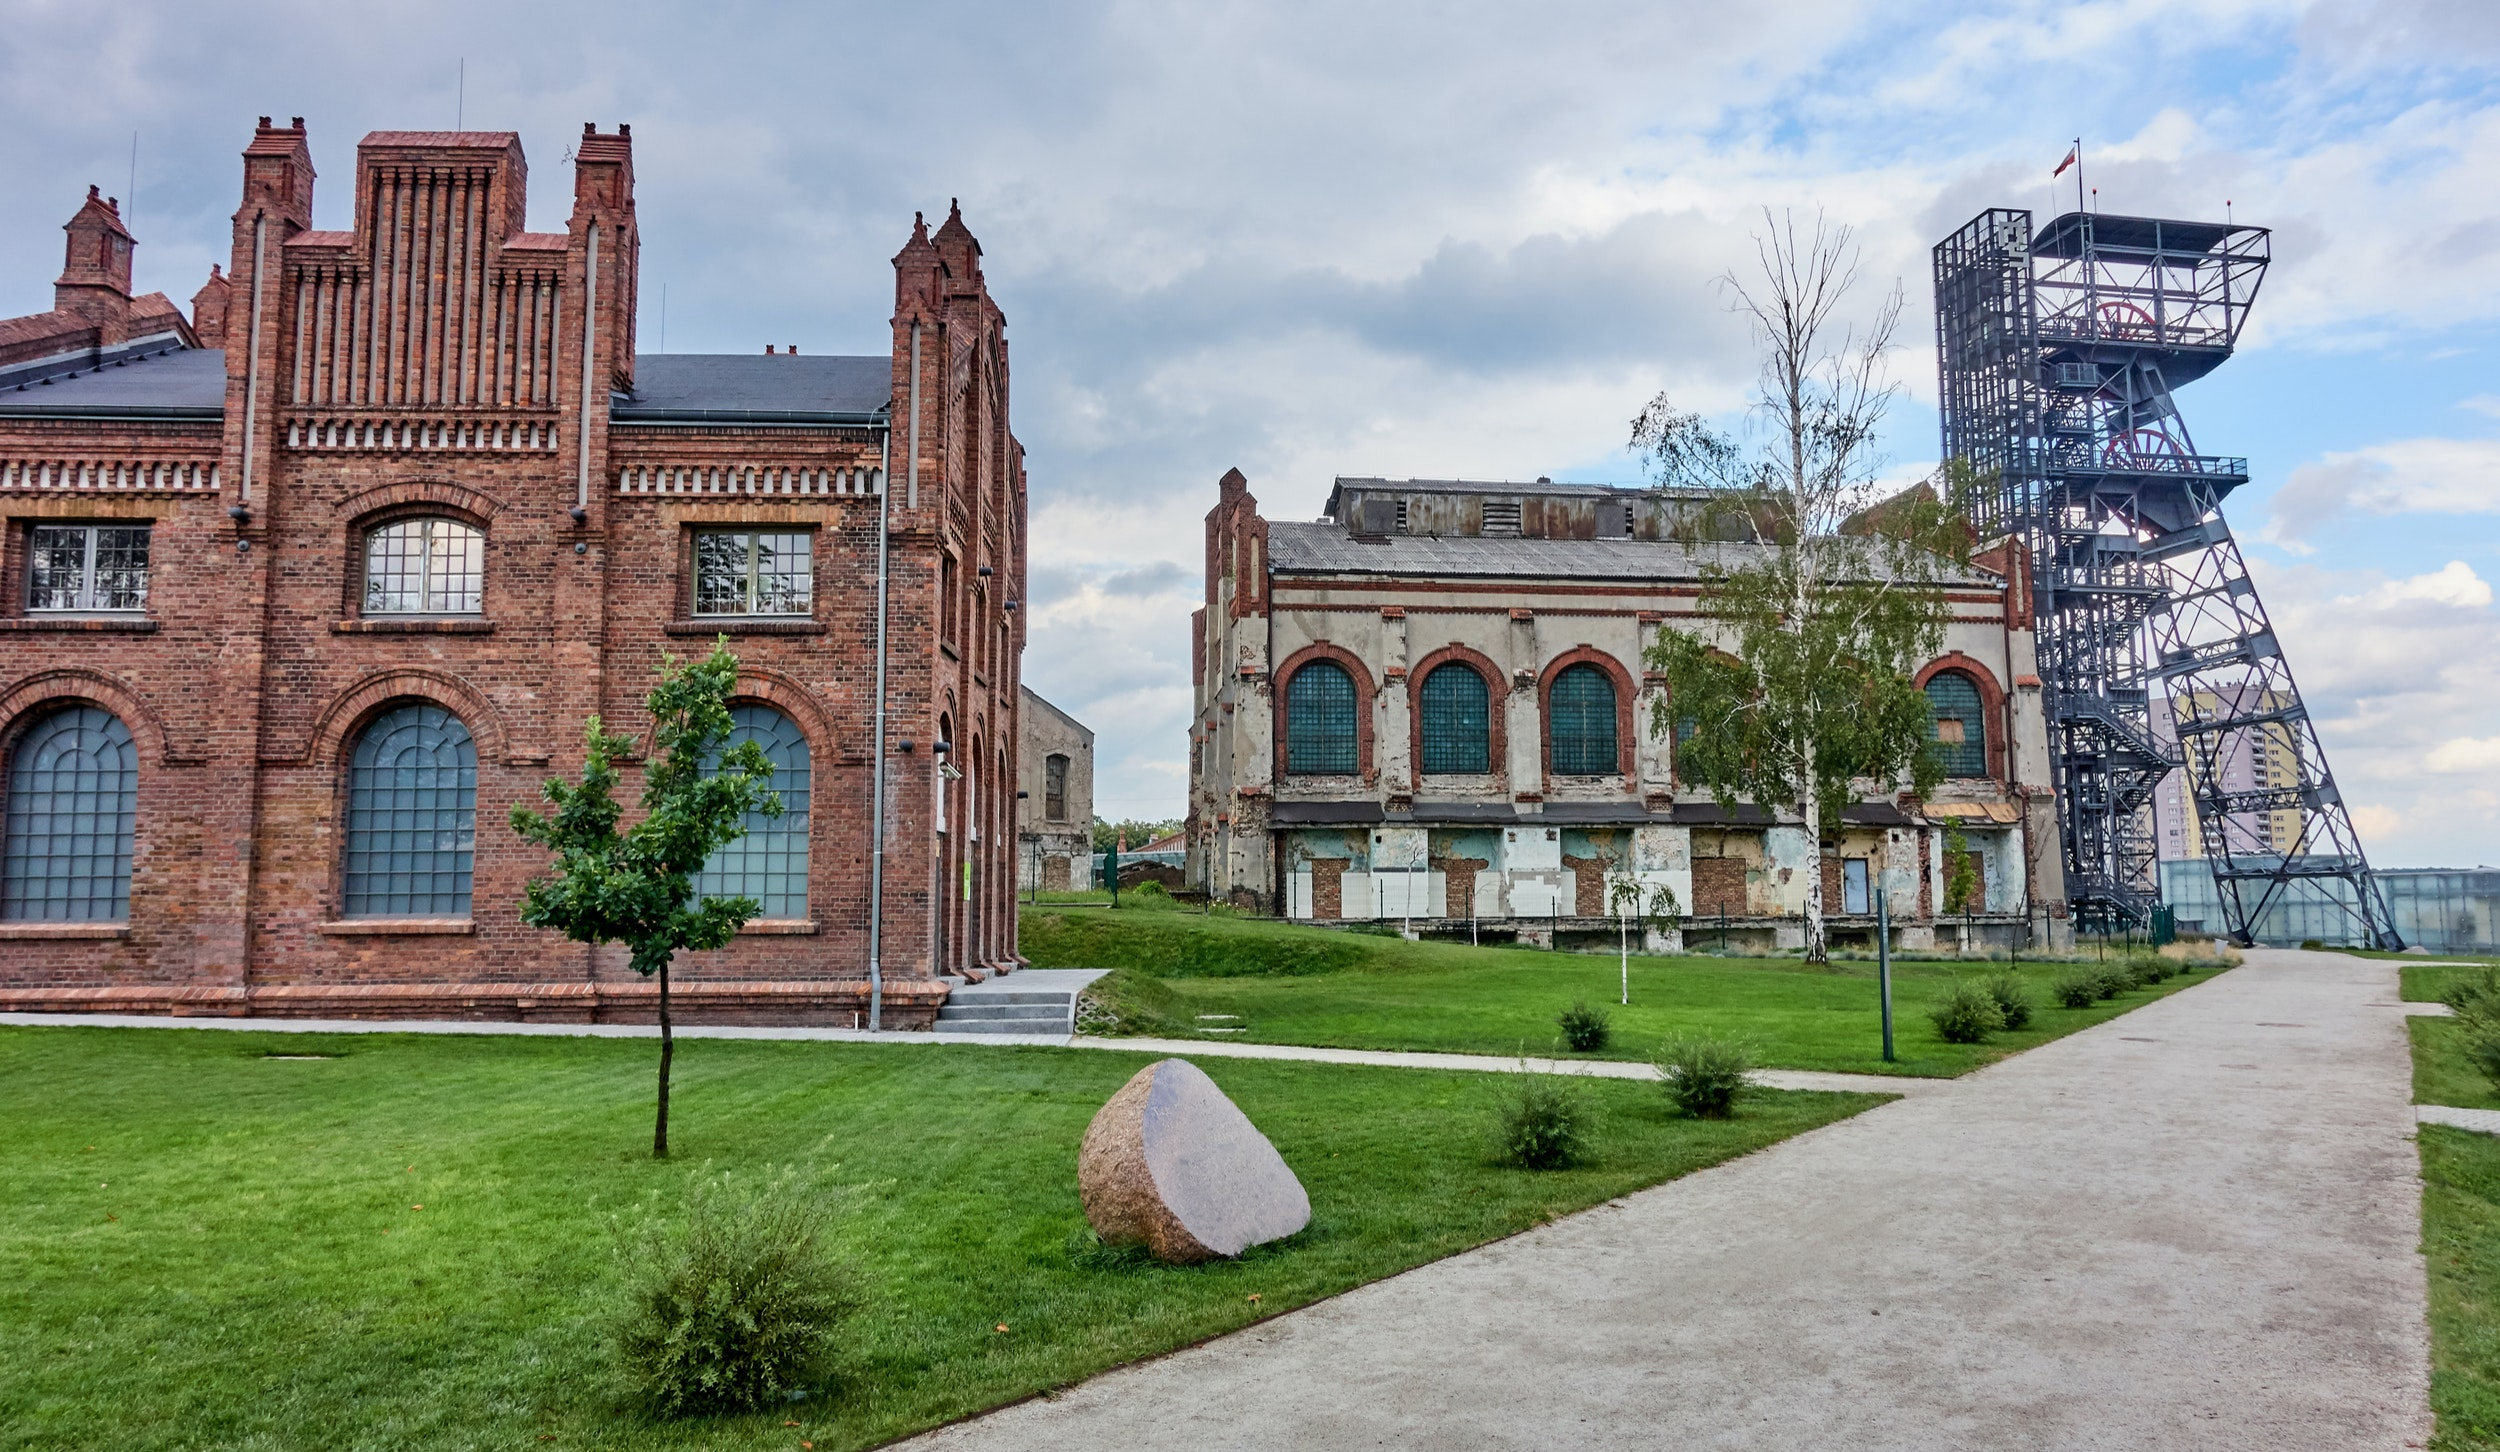 The new Silesian Museum is part of Katowice's cultural appeal.